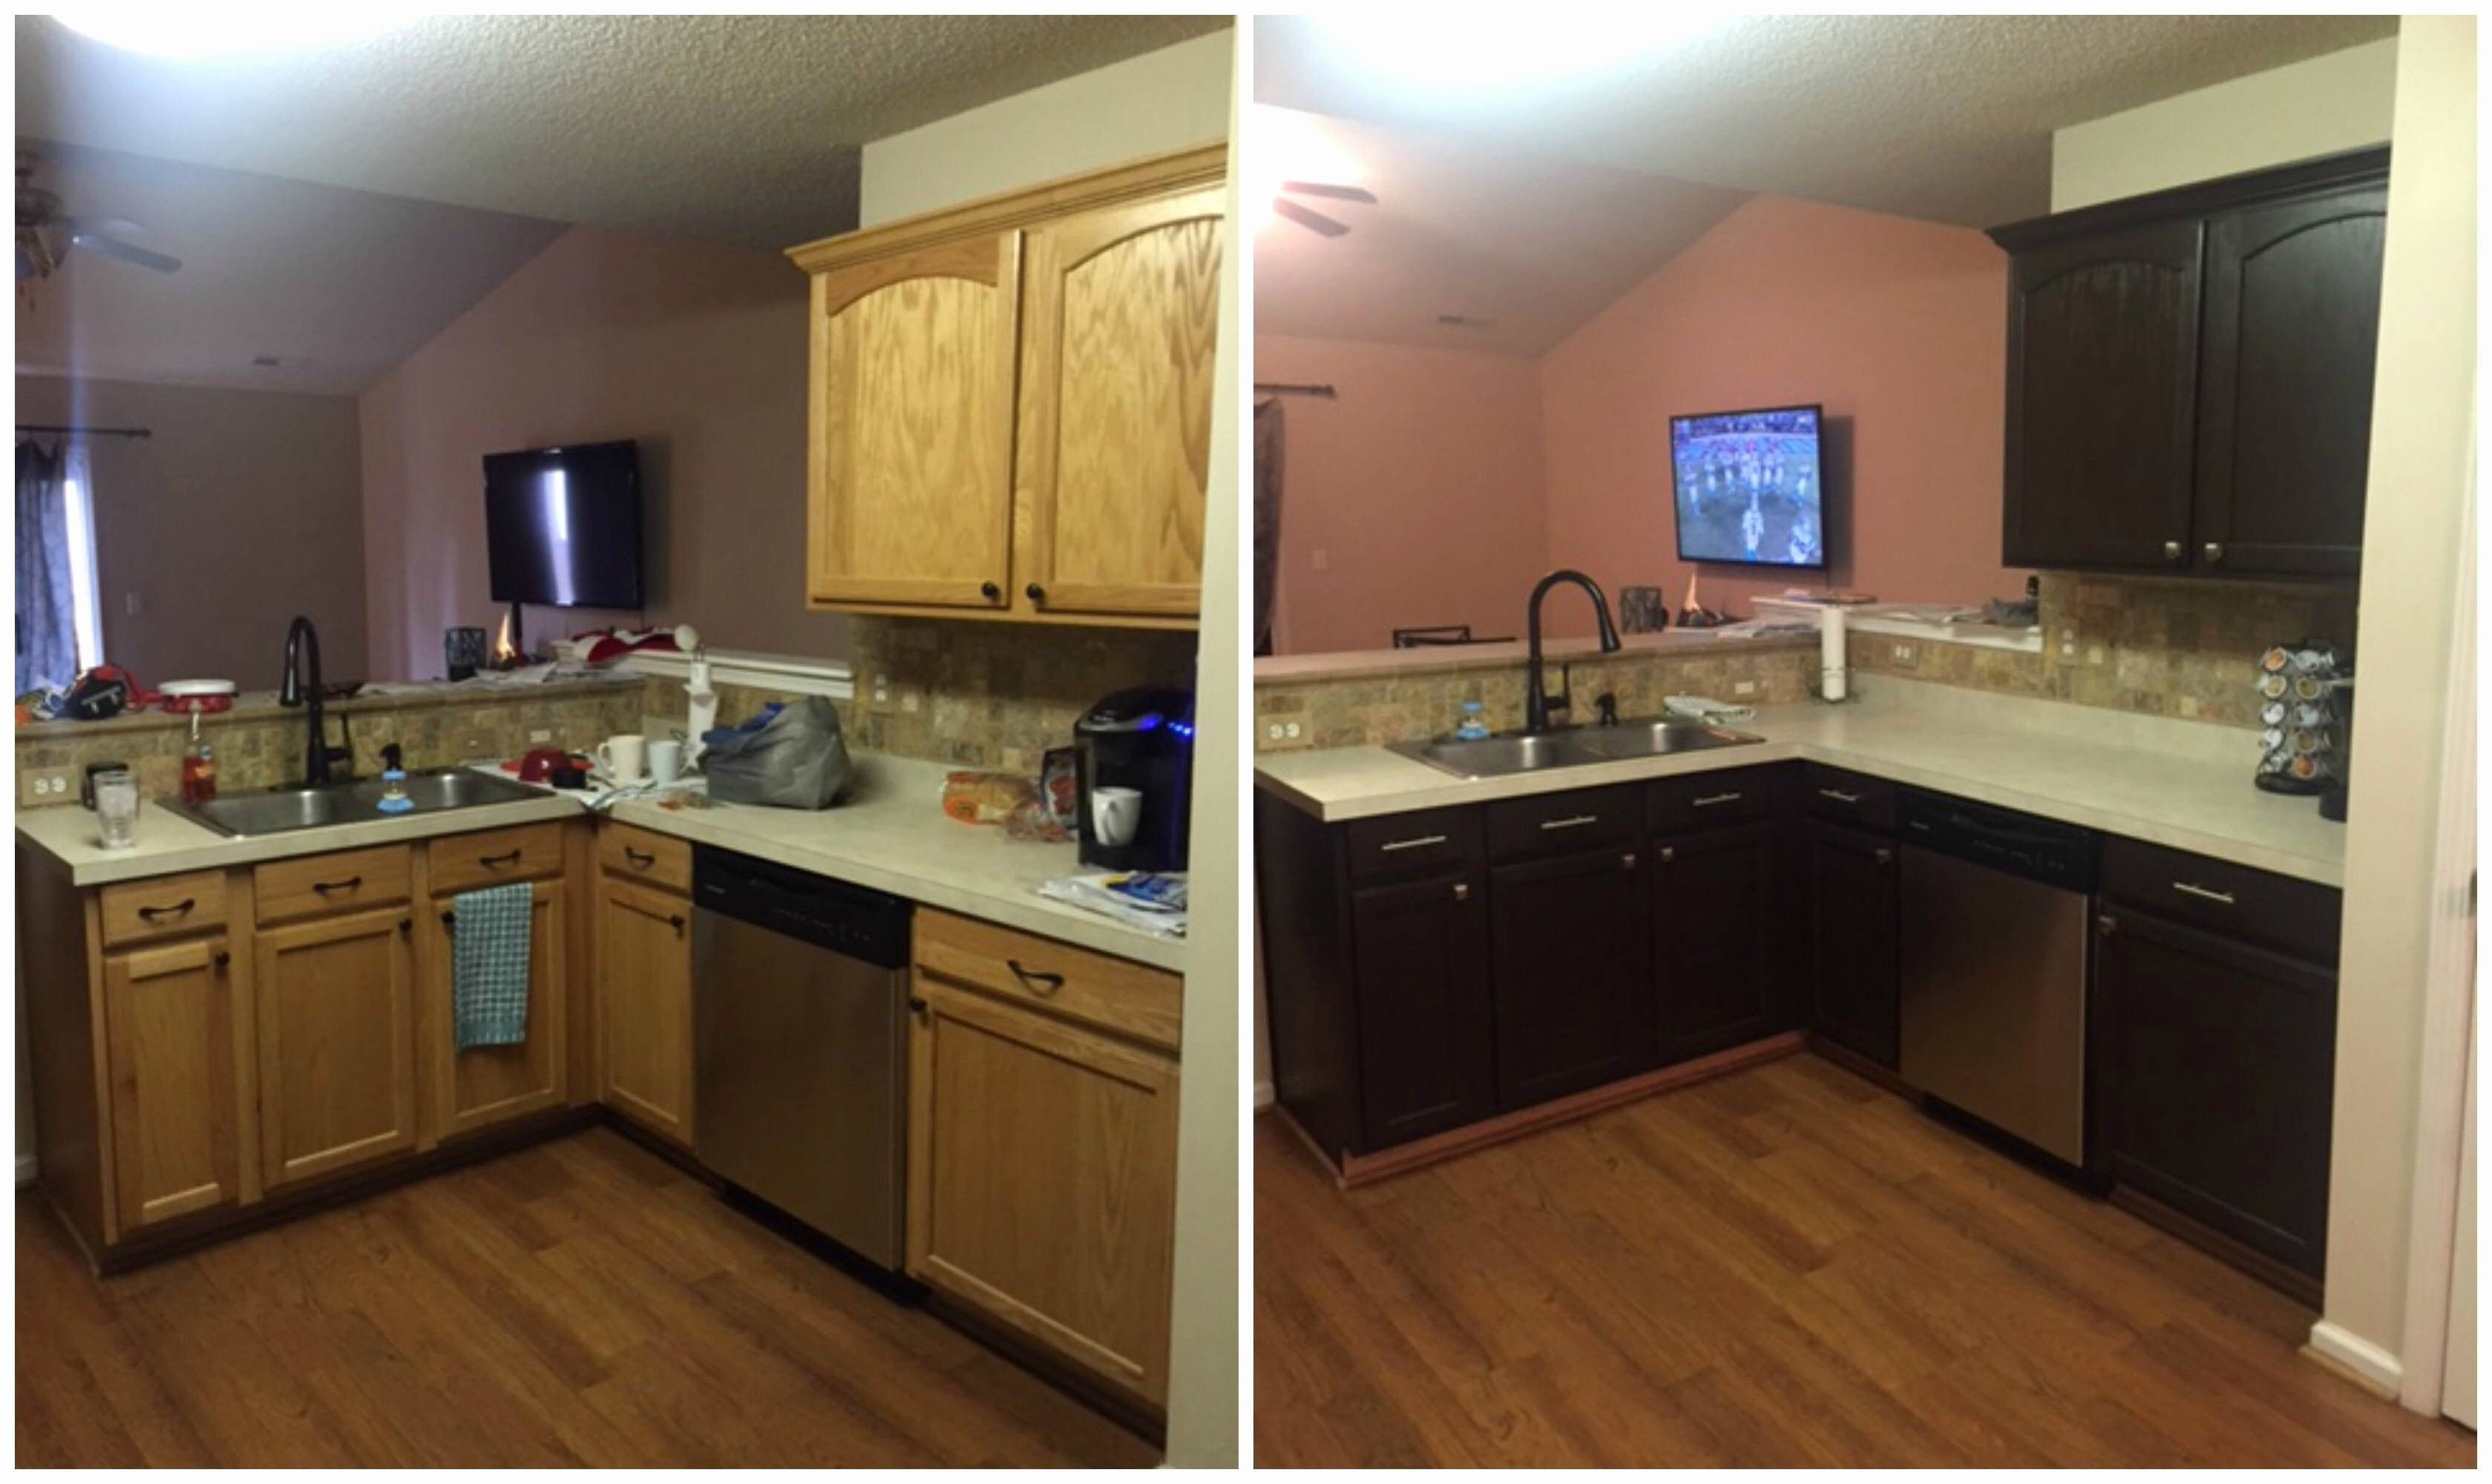 Best Of Painting Kitchen Cabinets Before And After Pictures The Amazing And Also Beautiful Painting Kitchen Cabinets Before And After Pictures With Regard To